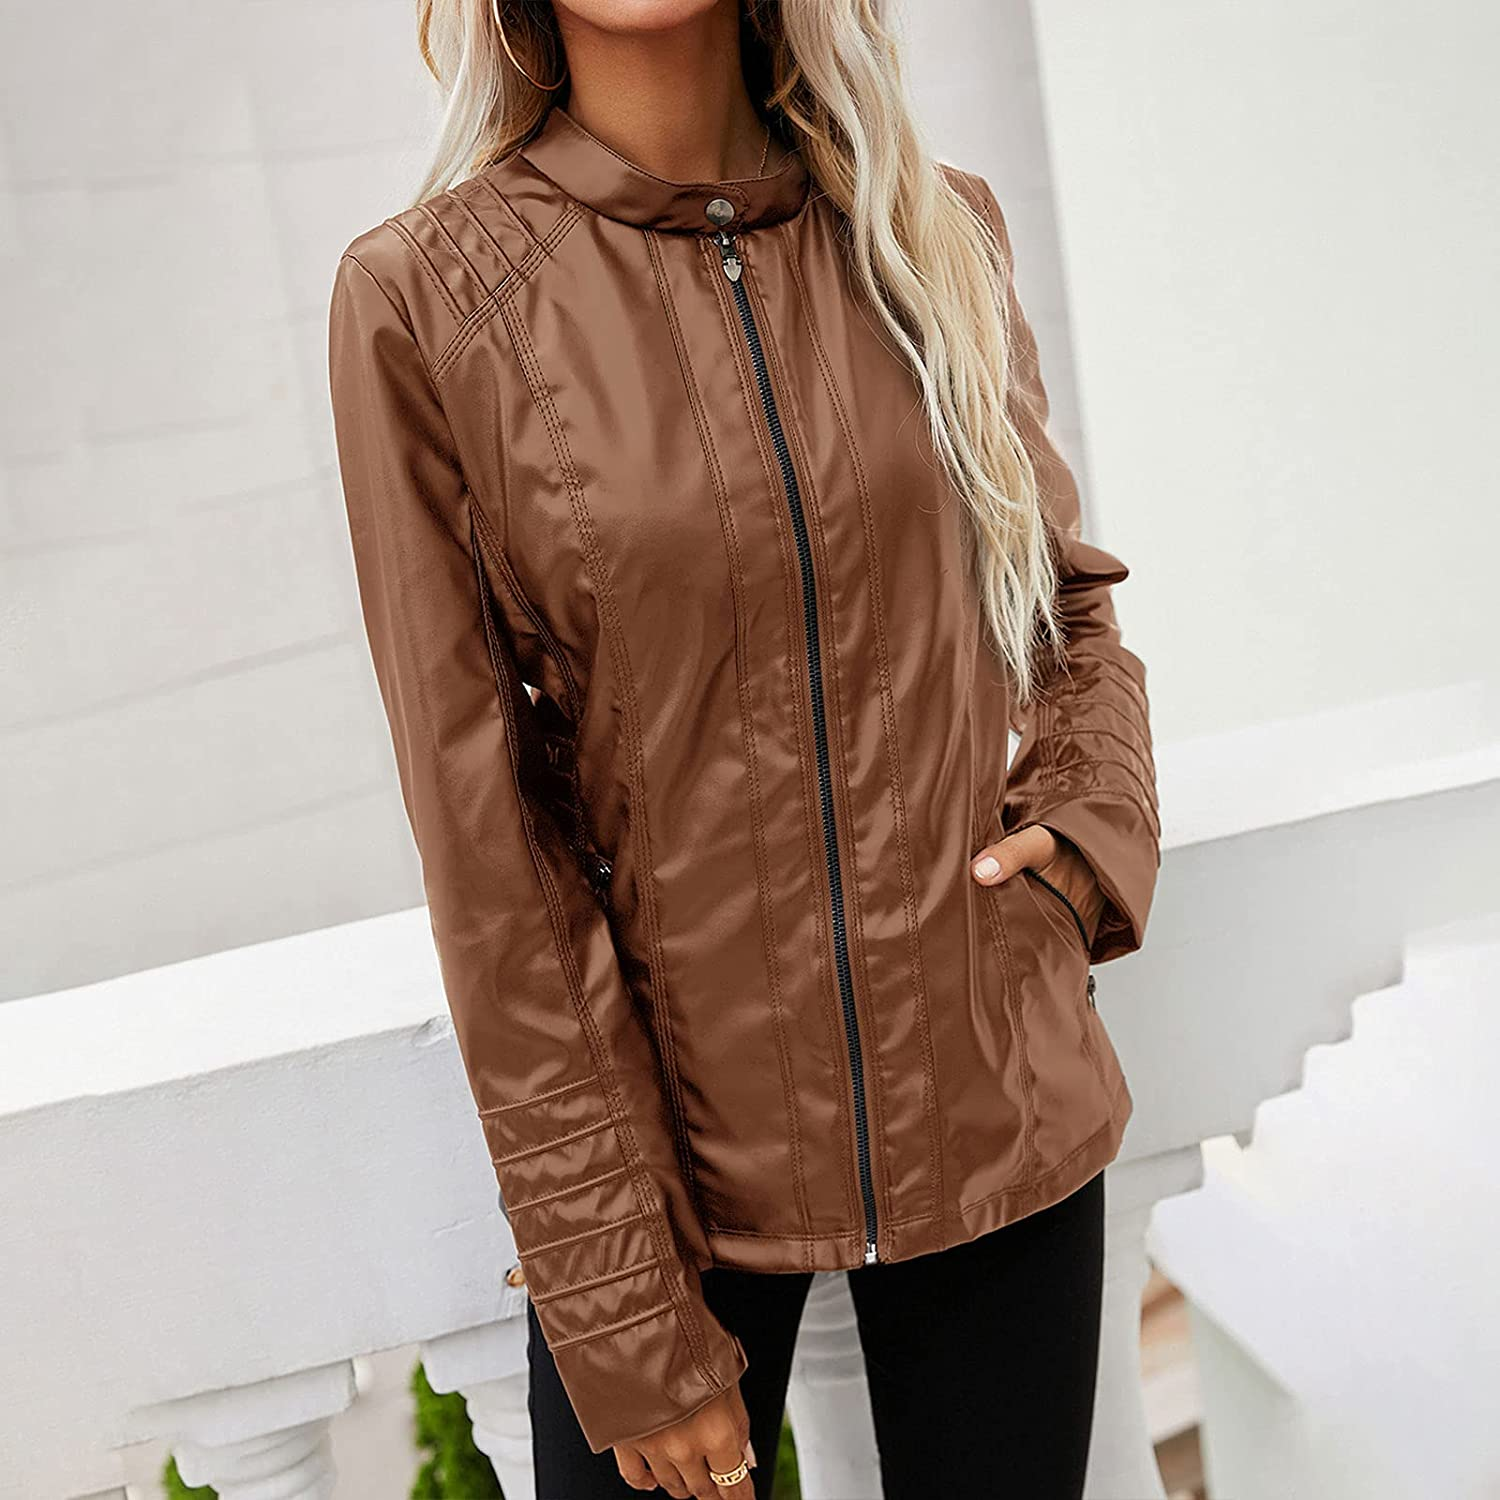 CAICAIL Women's Faux Leather Jackets, Autumn and Winter Zip Up Motorcycle Short PU Moto Biker Outwear Fitted Slim Coats